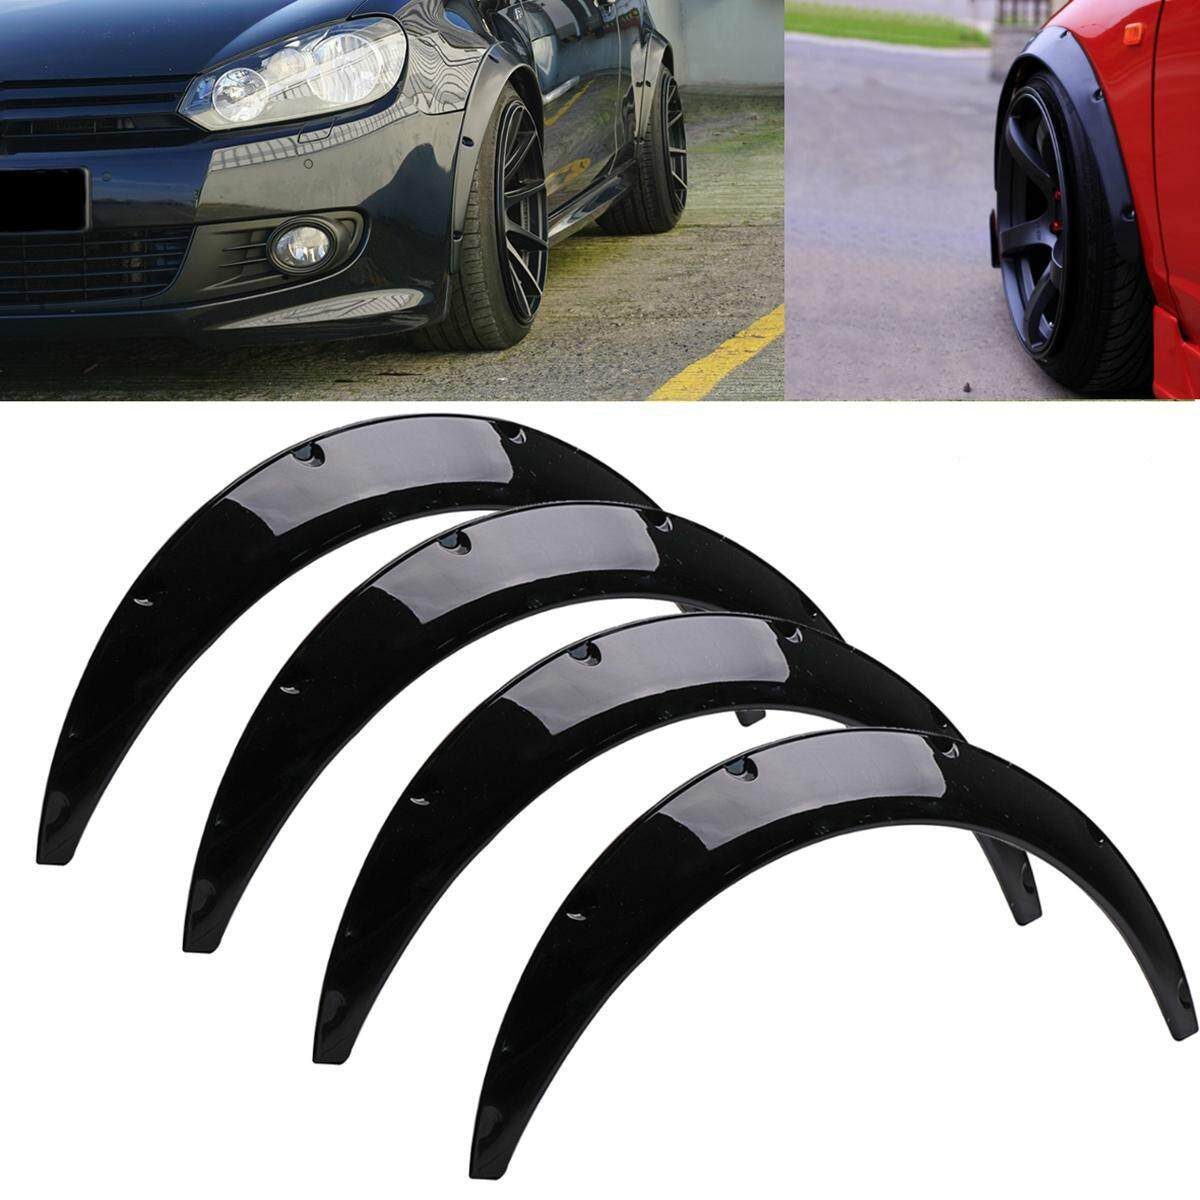 Fender Flares Trim Buy Fender Flares Trim At Best Price In